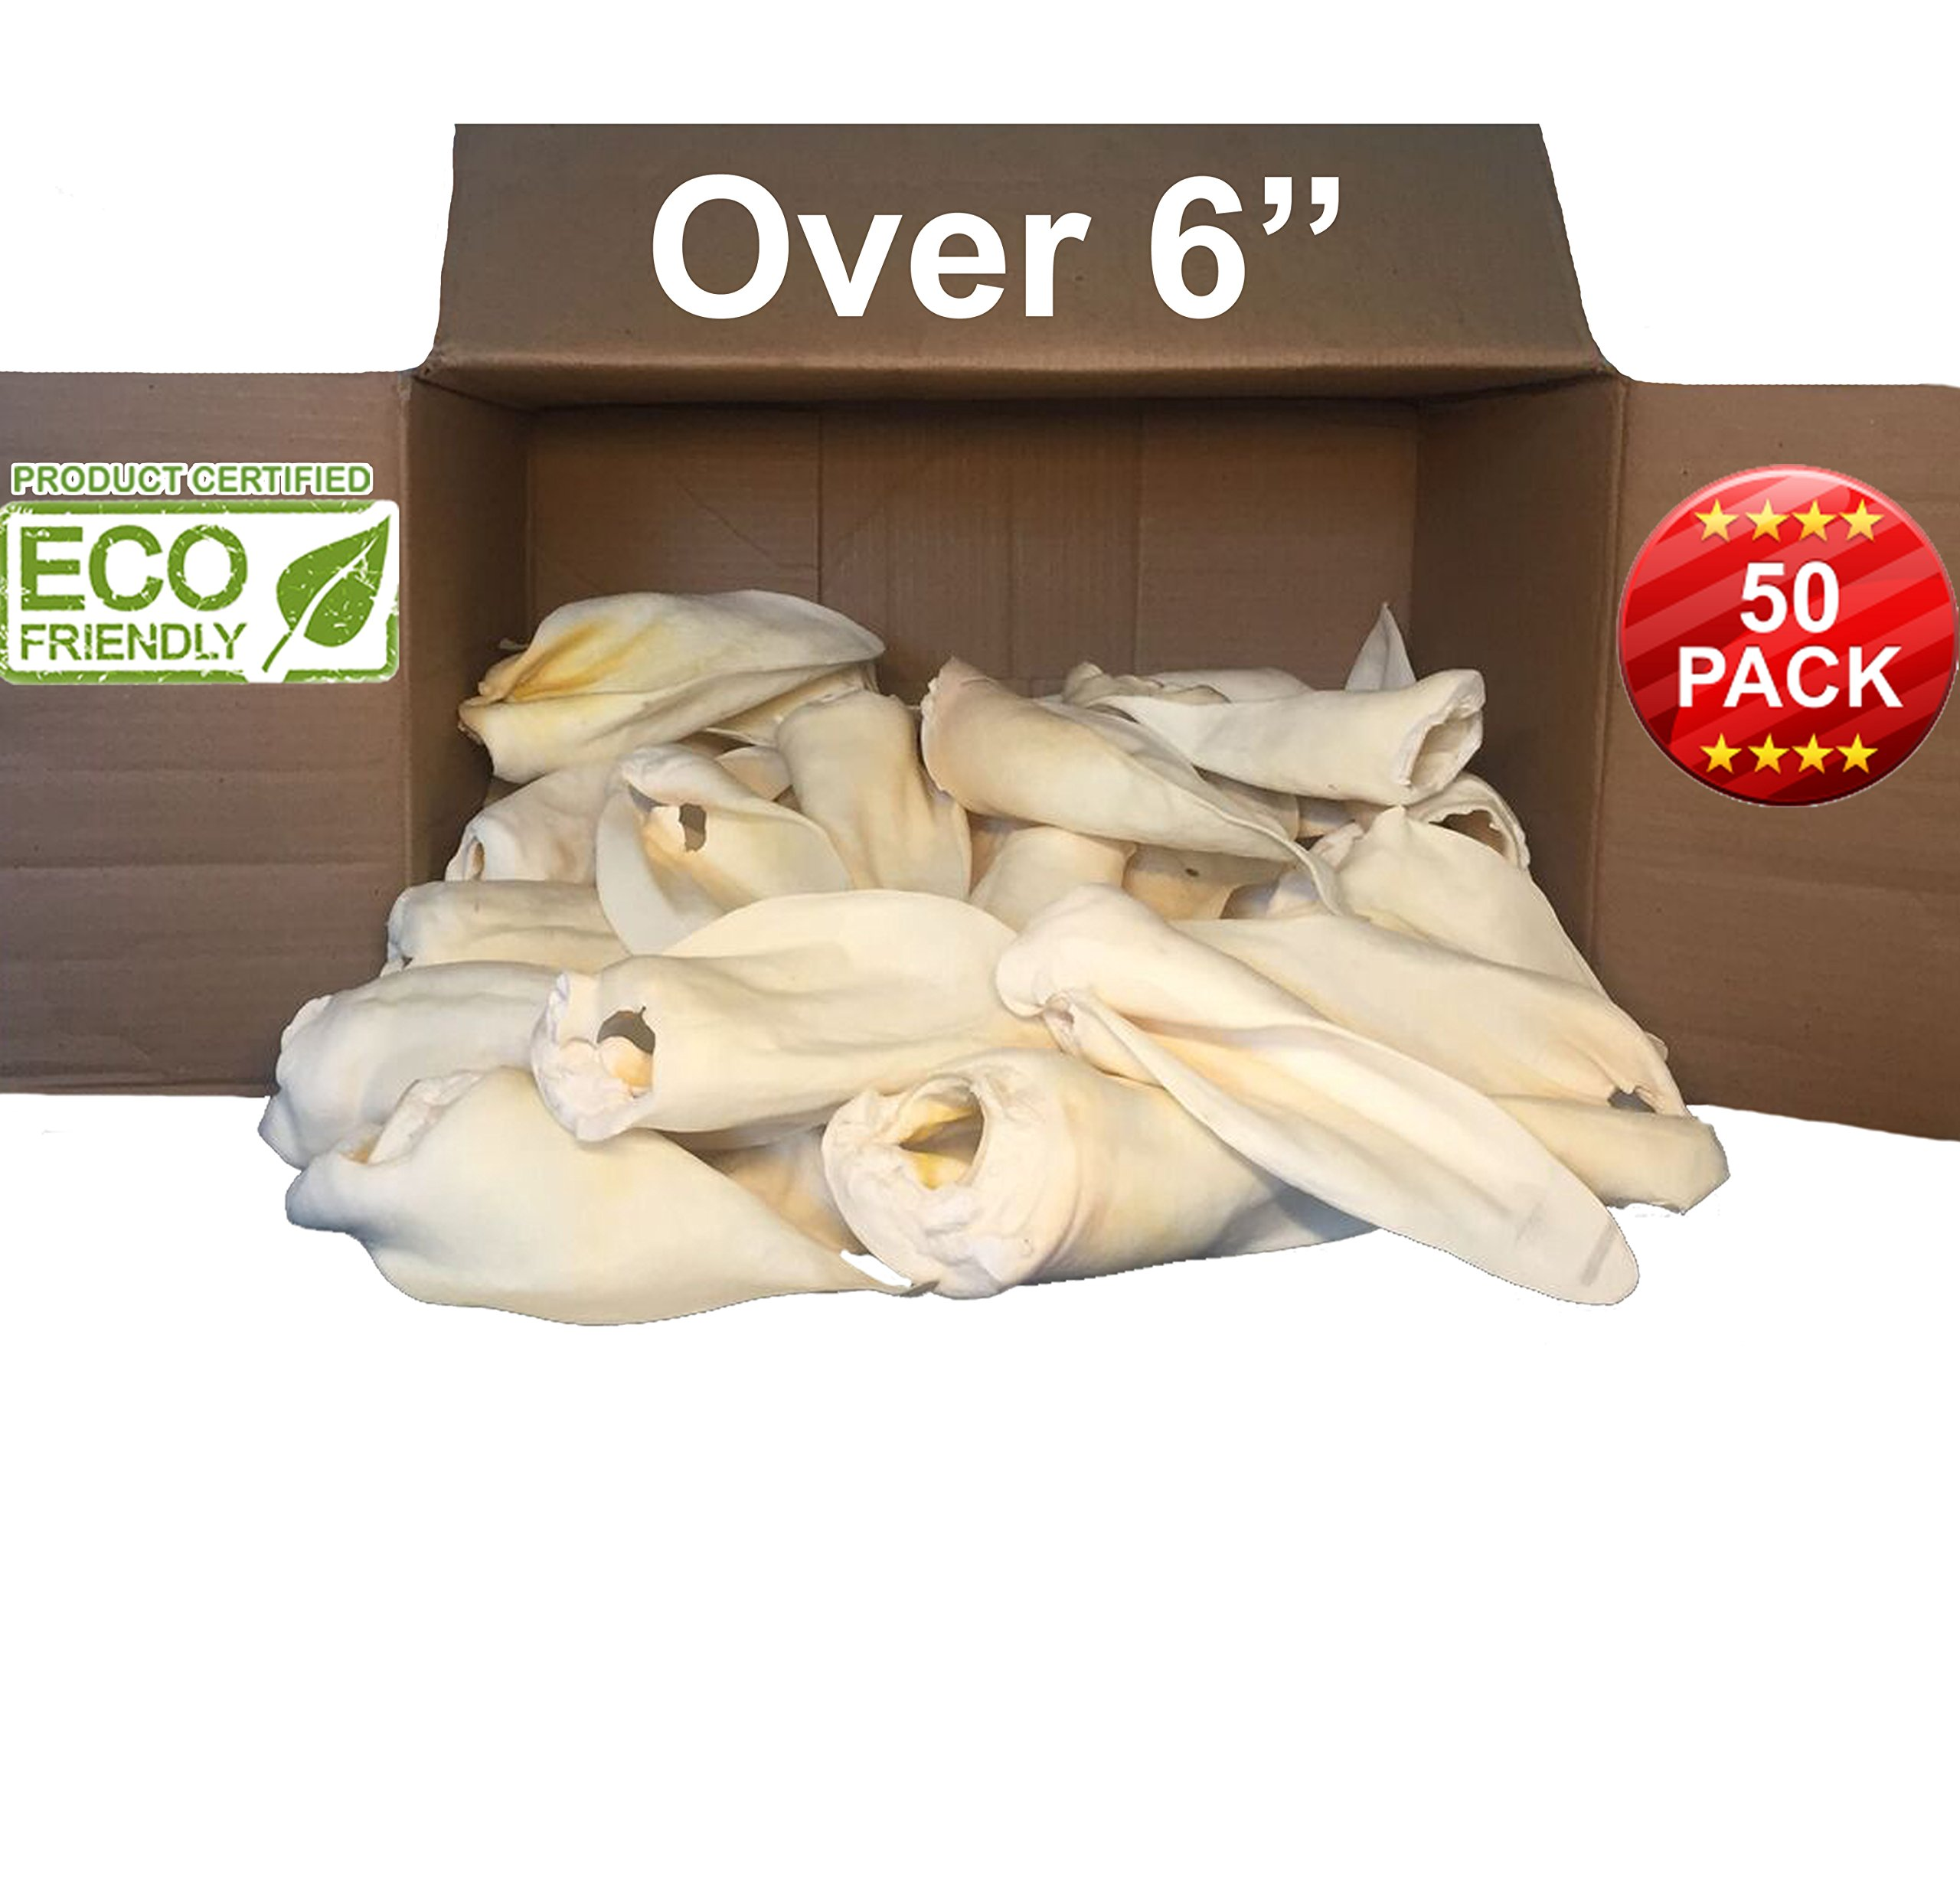 100% Natural large size - Over 6 inches- REAL Cow Ears Prime Thick-cut, 50 Pack, Dog Chews by Brazilian Pet, Free Range Grass Fed Cattle, No additives, Chemicals or Hormones